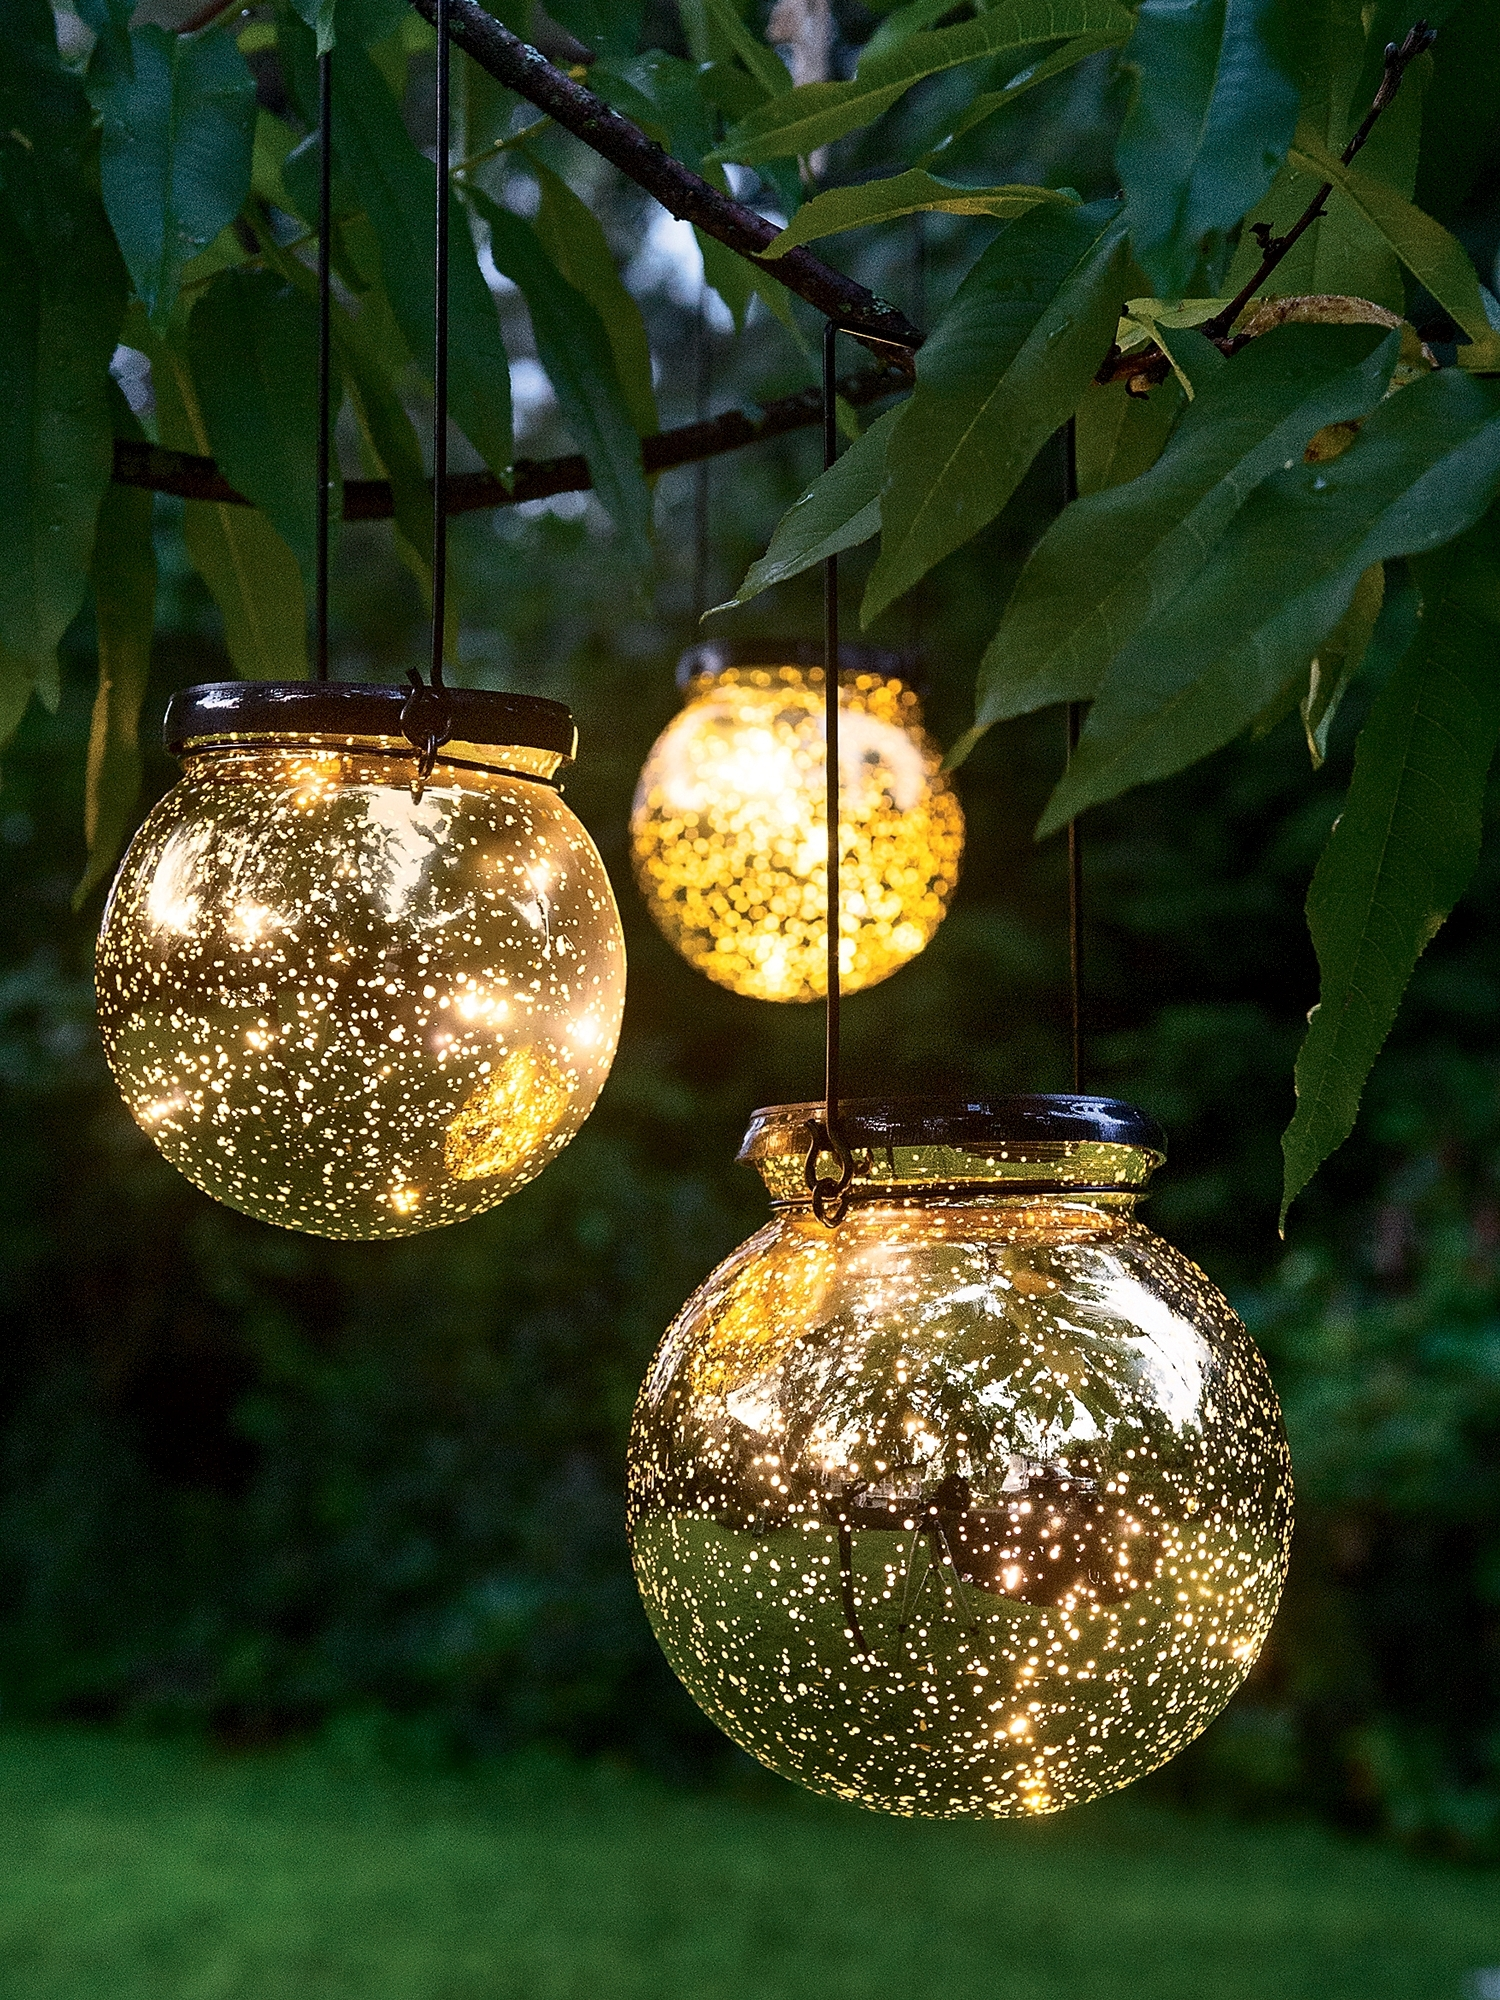 For Patio? Battery Operated Globe Lights: Led Fairy Dust Ball Intended For Popular Outdoor Hanging Lanterns With Battery Operated (View 6 of 20)